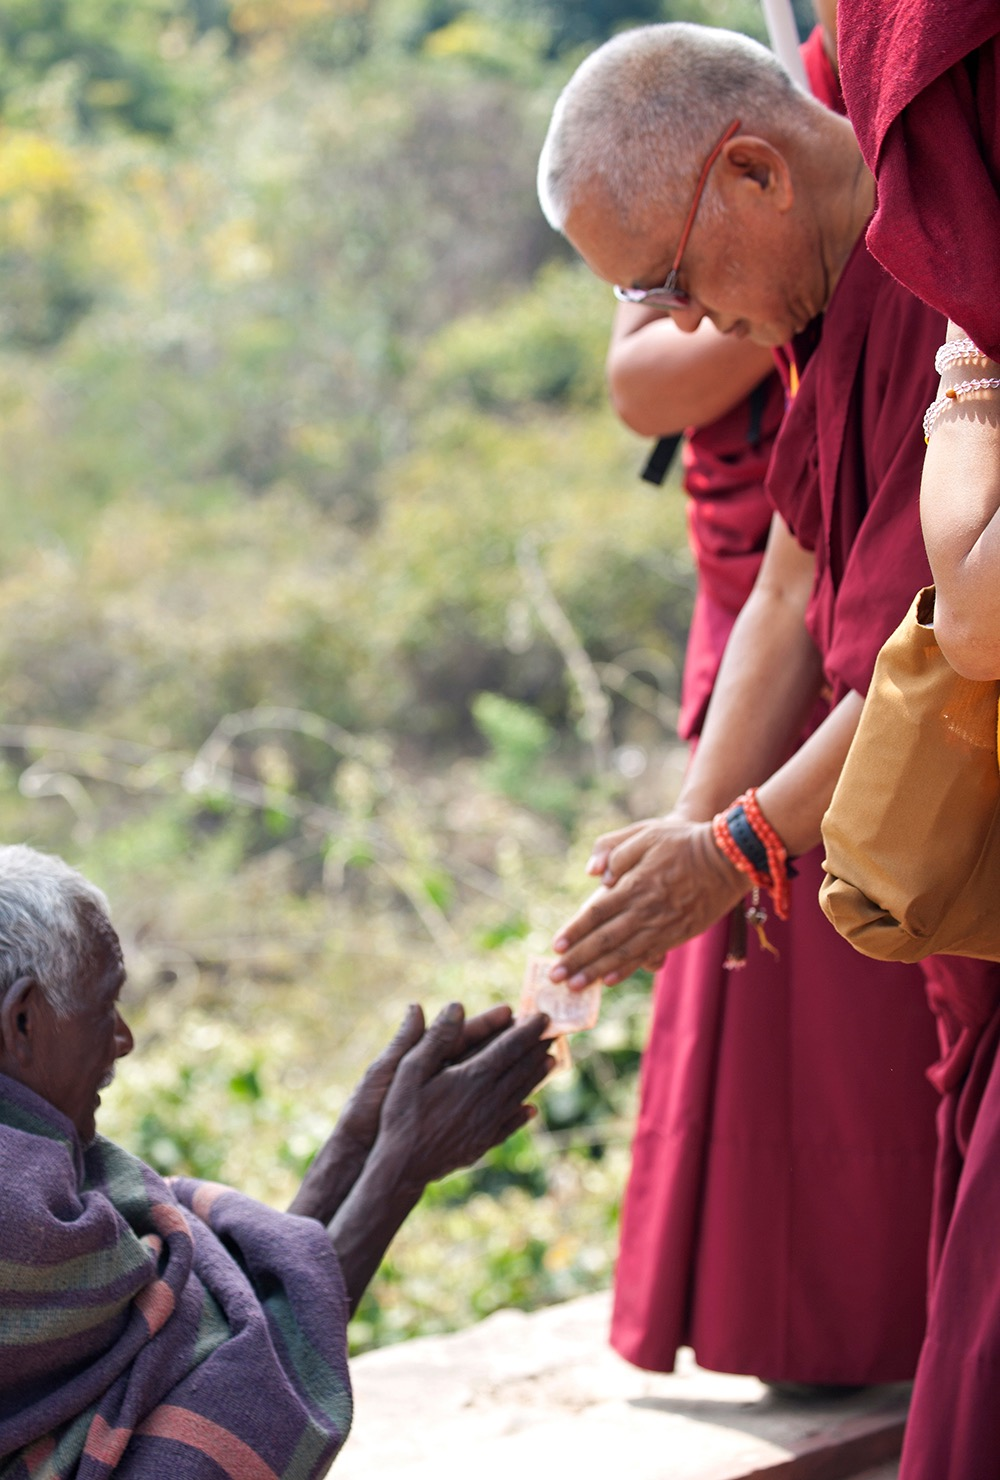 Rinpoche making charity respectfully to a beggar at Vulture'sPeak, India. (Photo Andy Melnic)